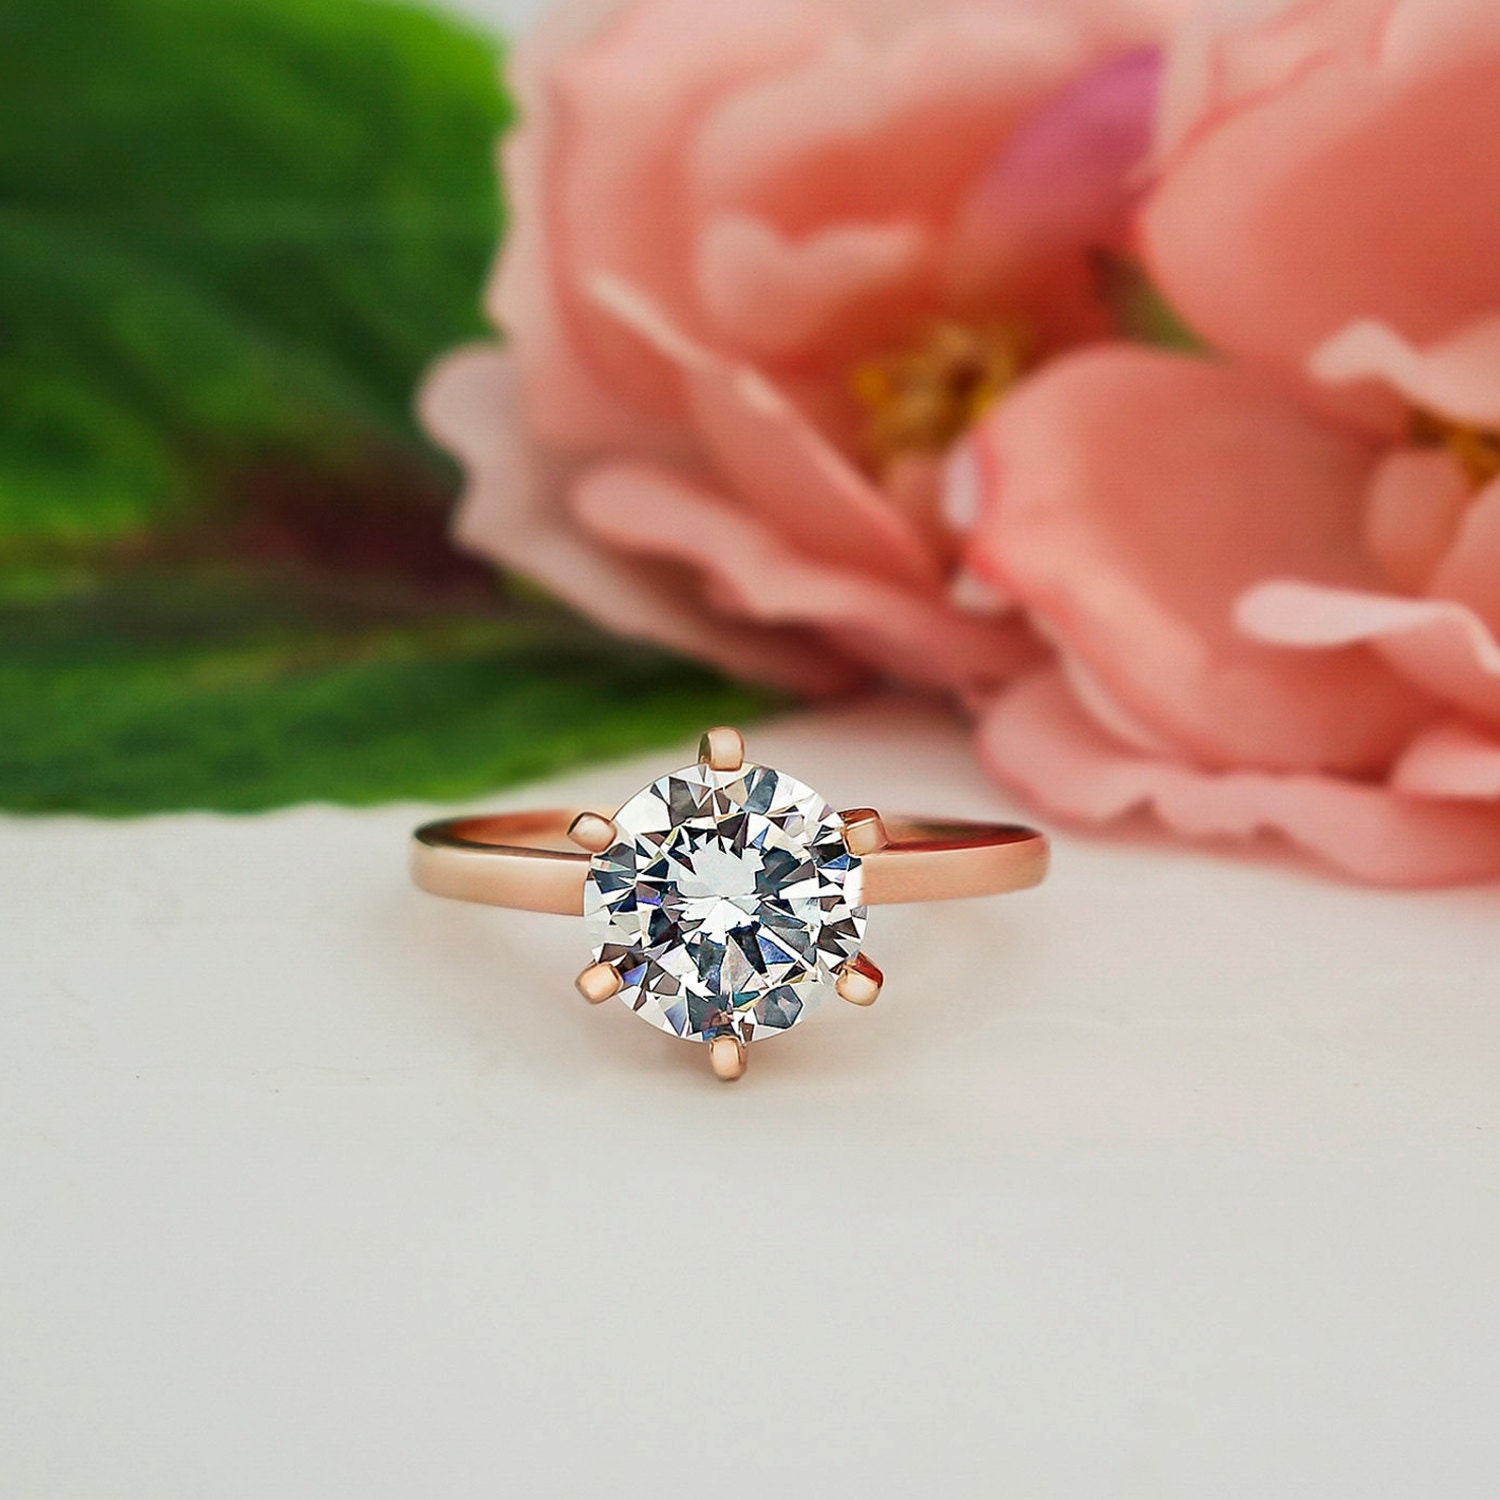 diamond engagement ring lab puregemsjewels created product classic tiffany cut prong round rings style